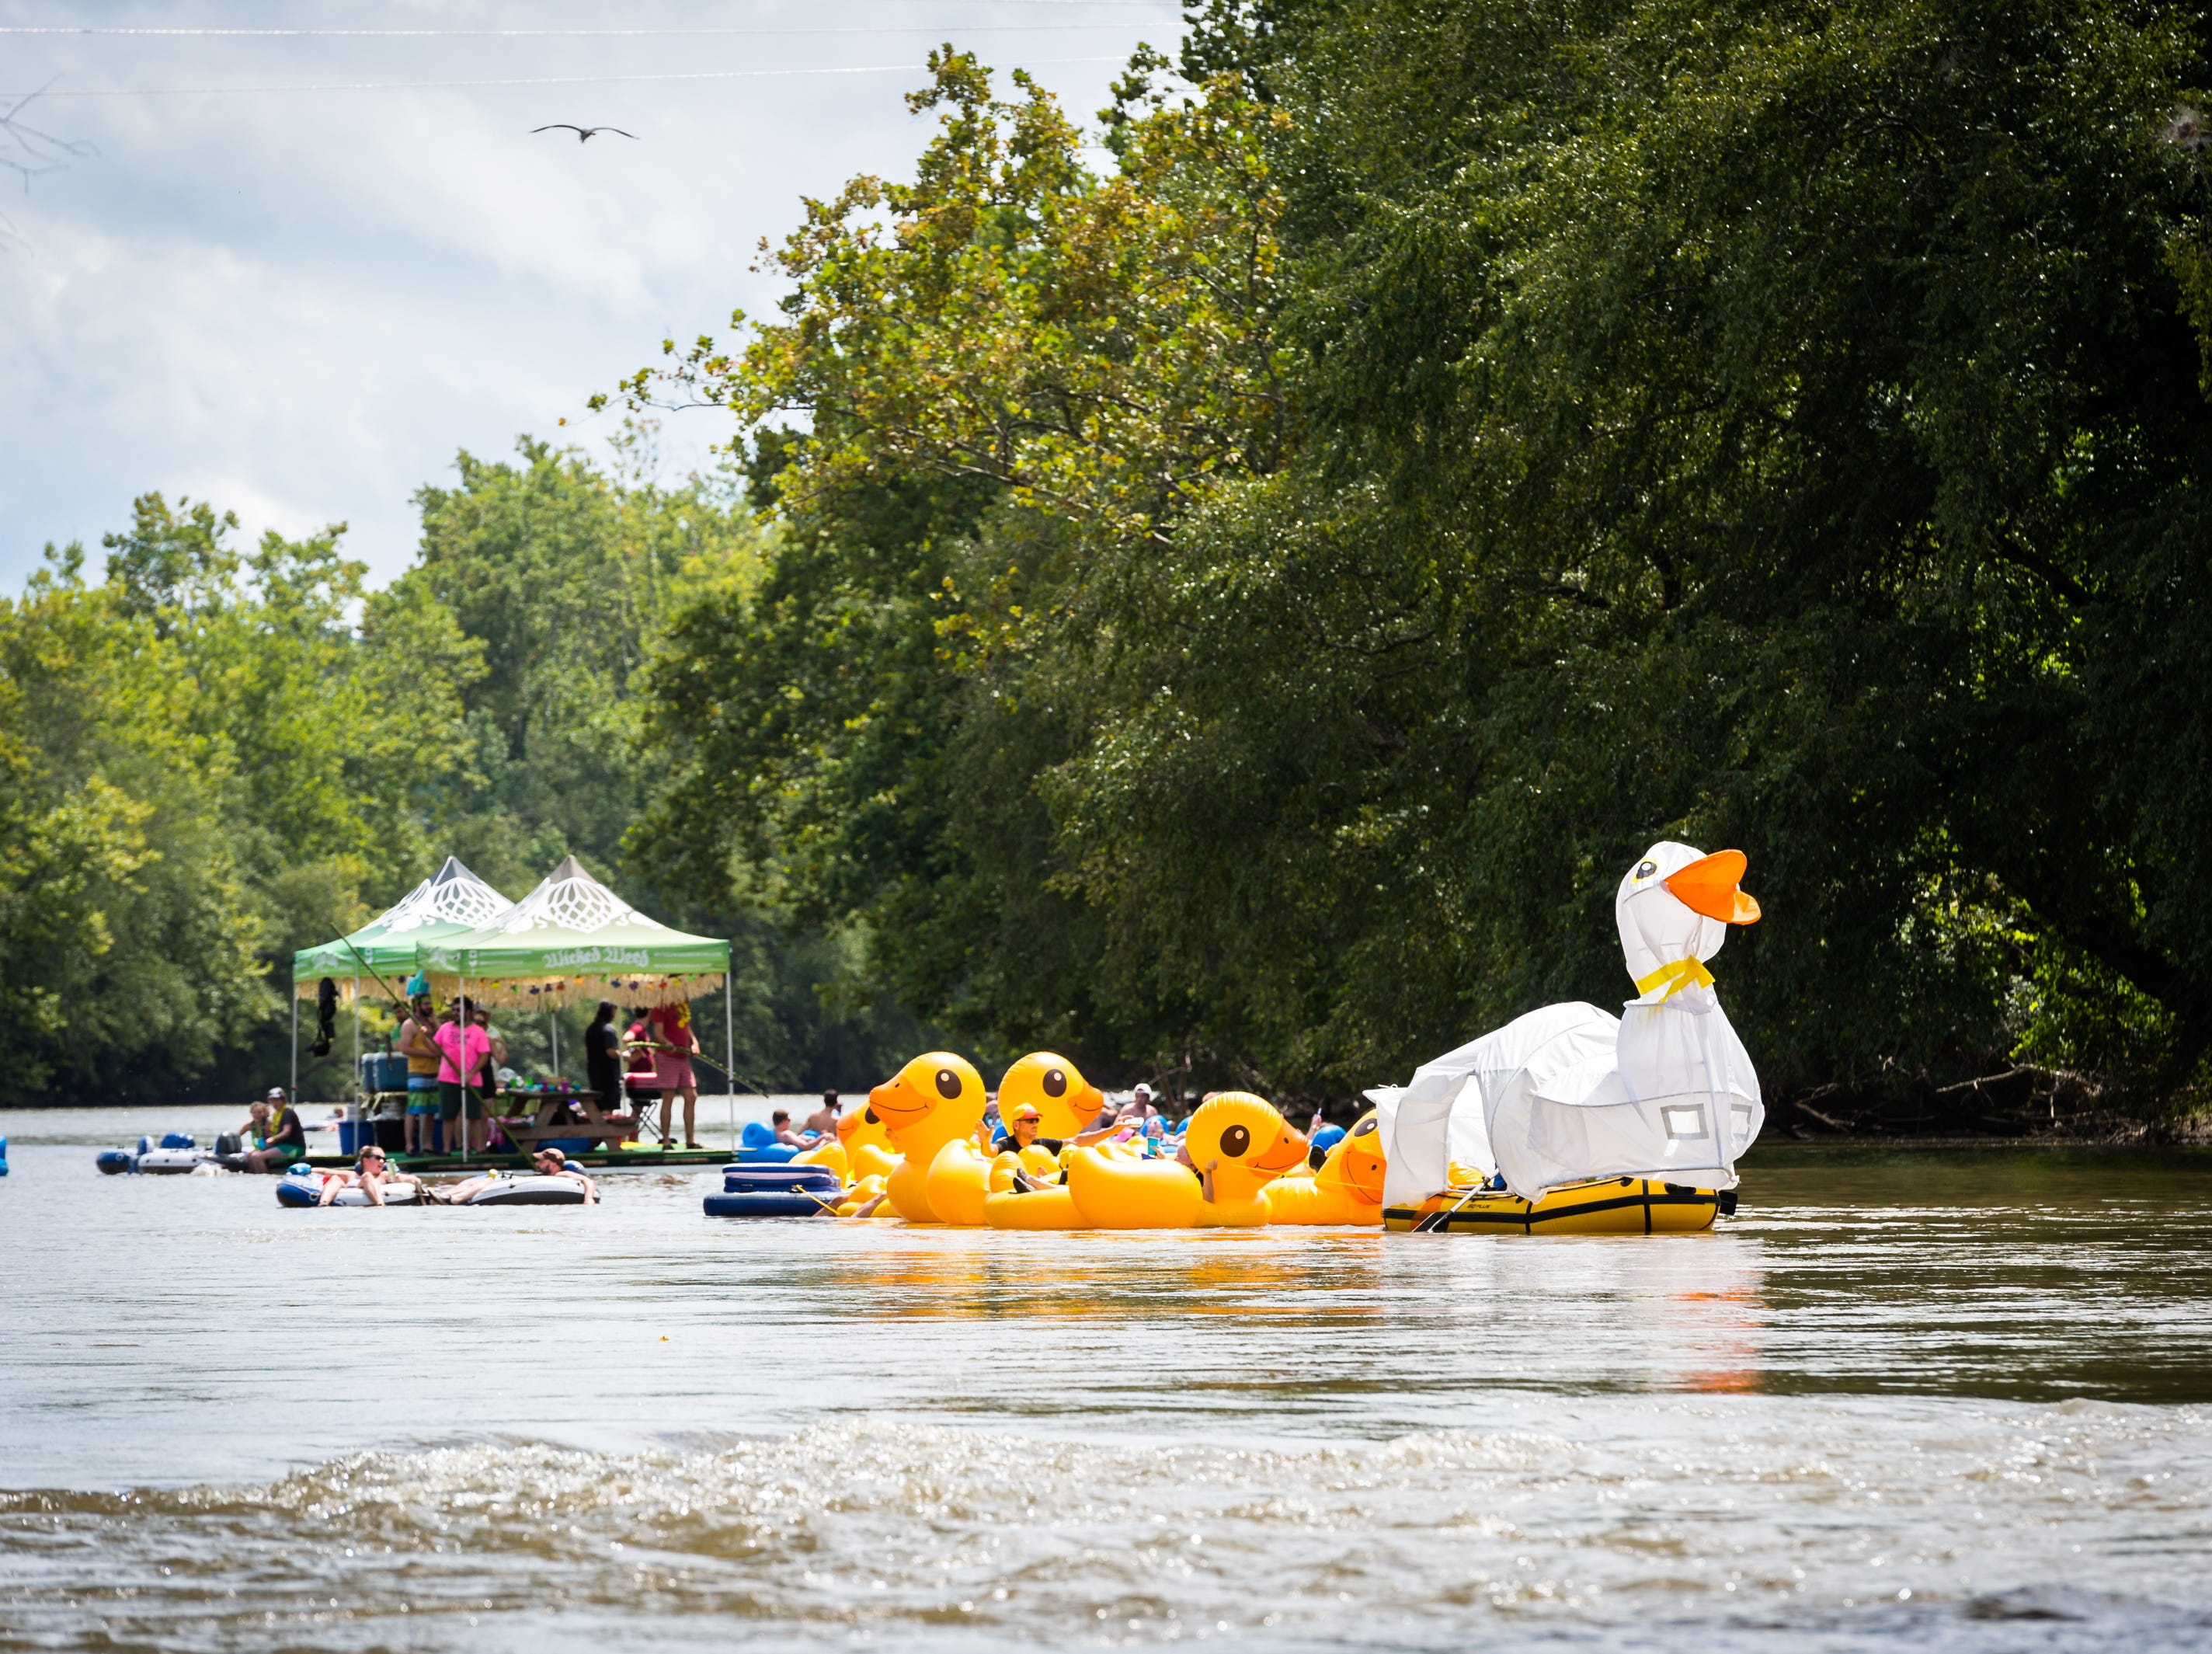 The Just Ducky Anything that Floats parade team makes its way down the French Broad River to New Belgium Brewing where RiverLink's RiverFest took place Saturday, August 18, 2018.